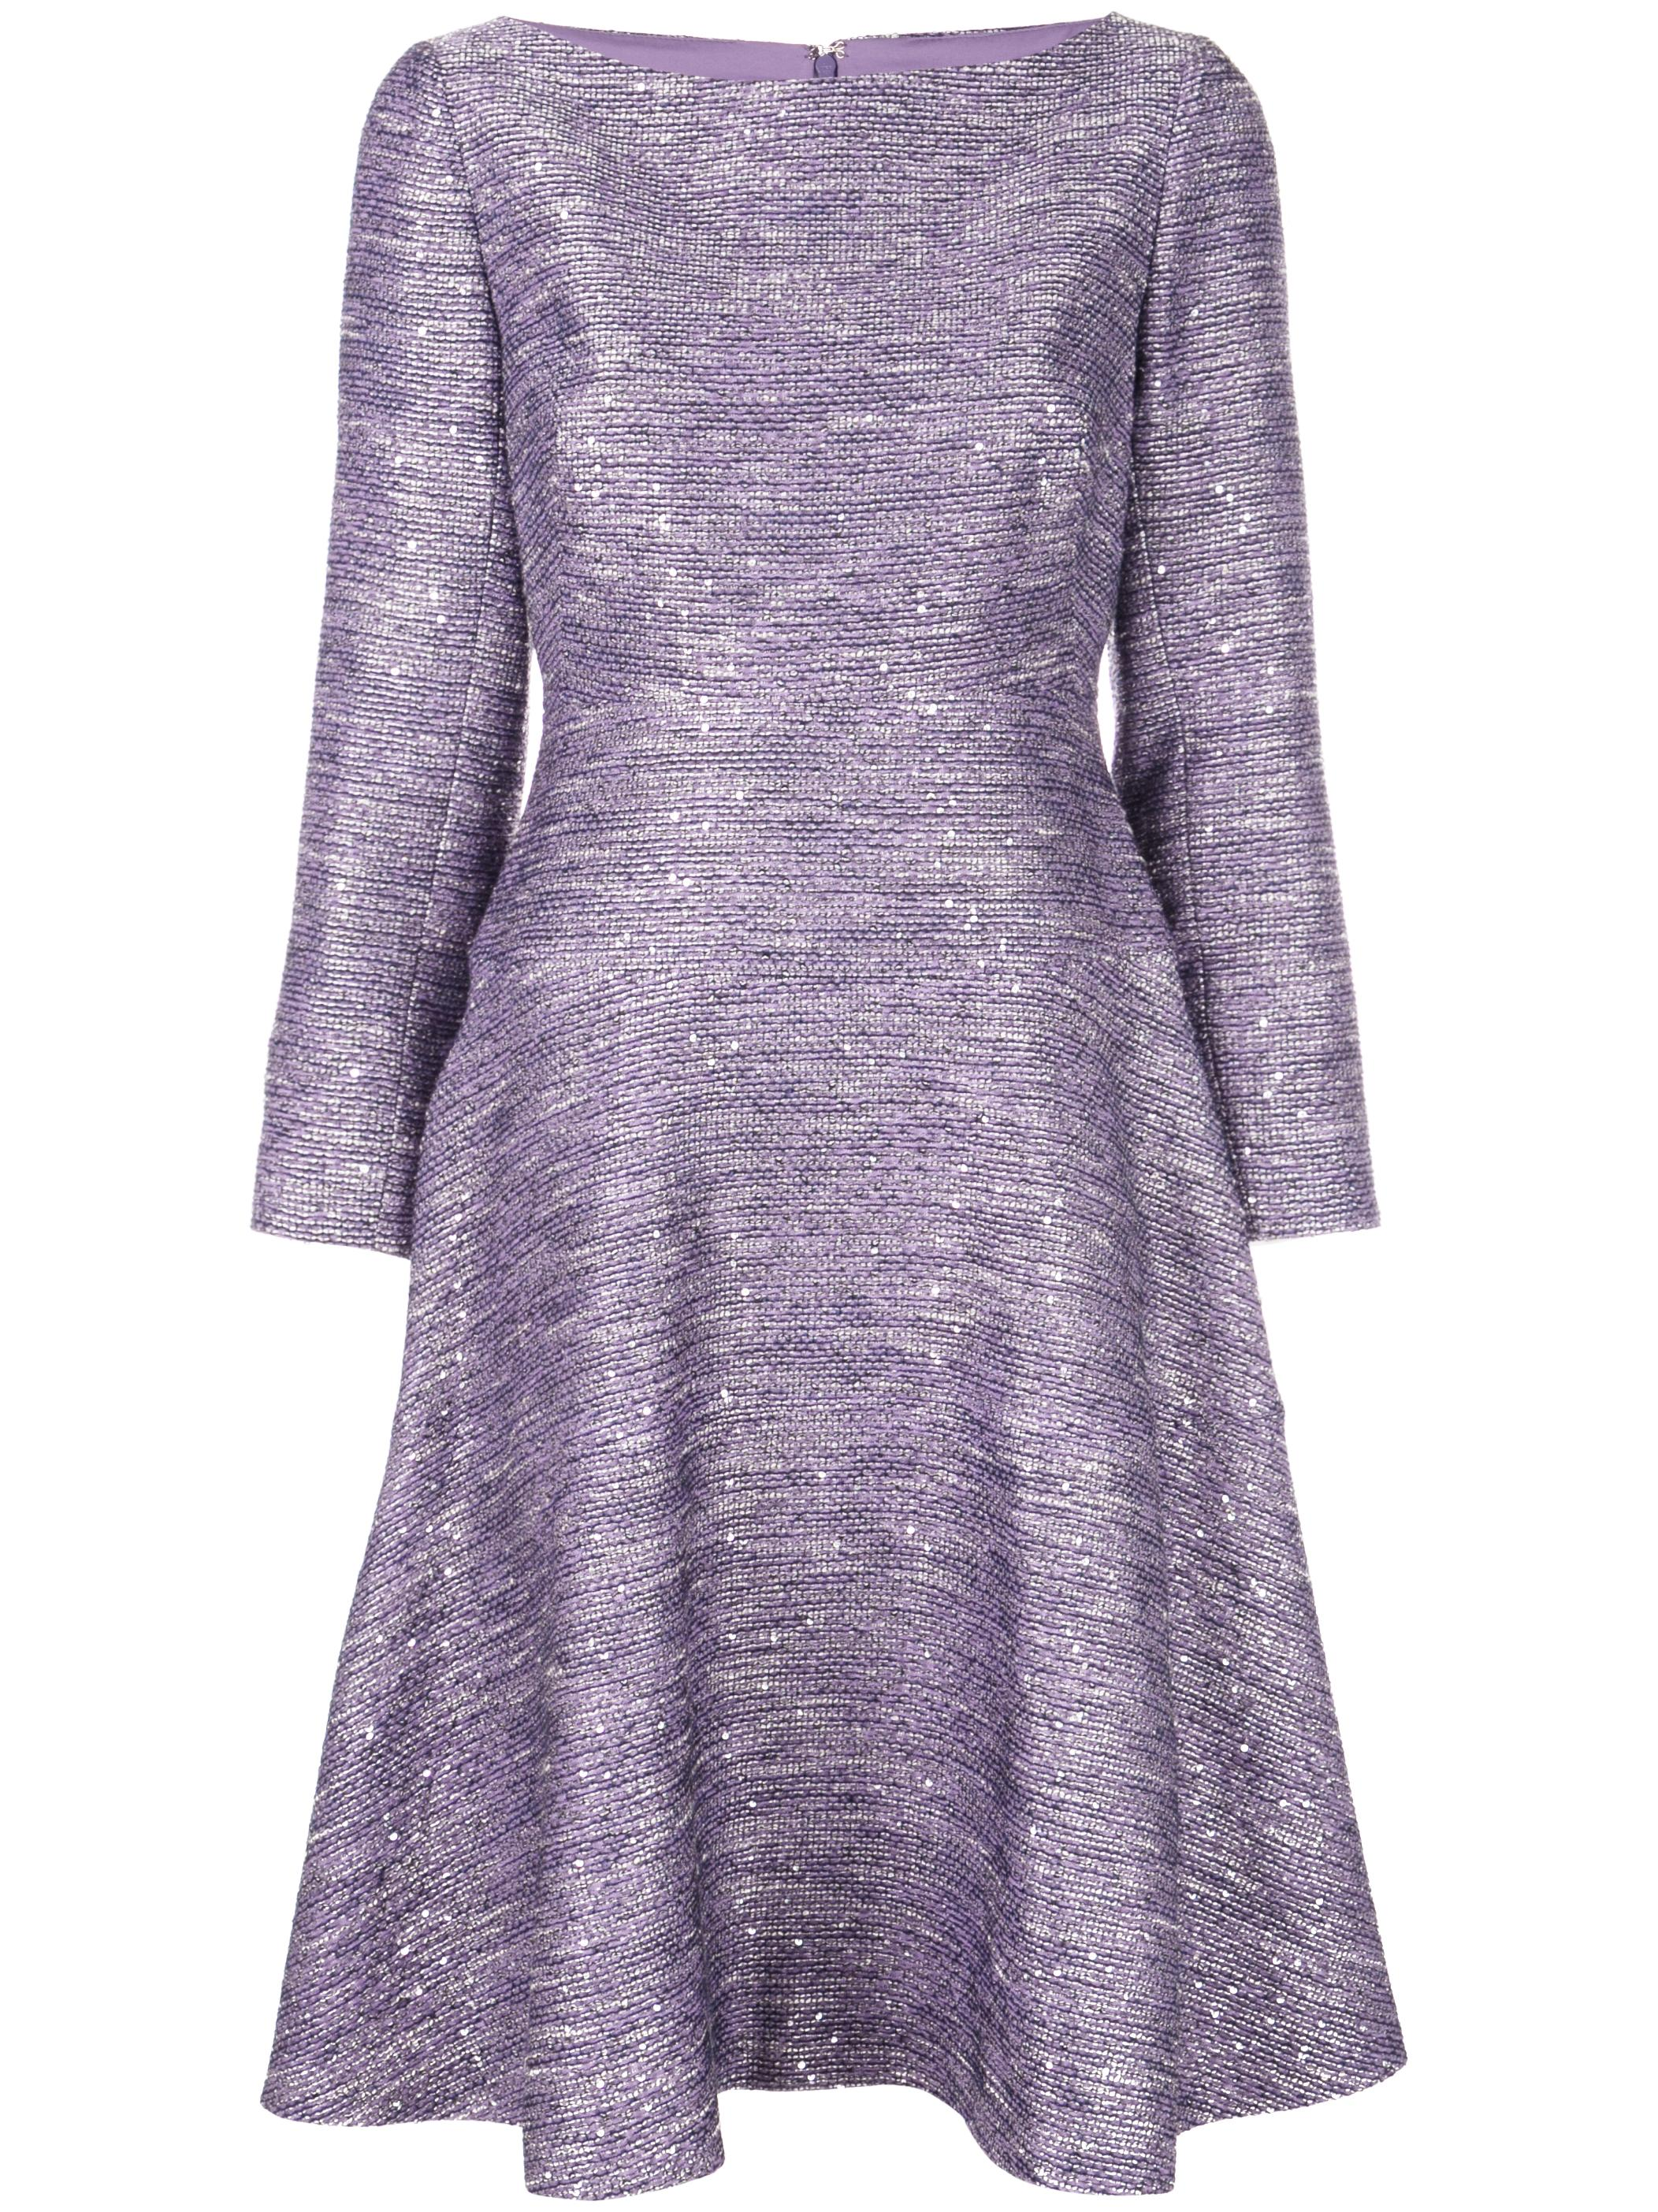 Long Sleeve Sequin Embellished Tweed Tiered Dress Item # R199274